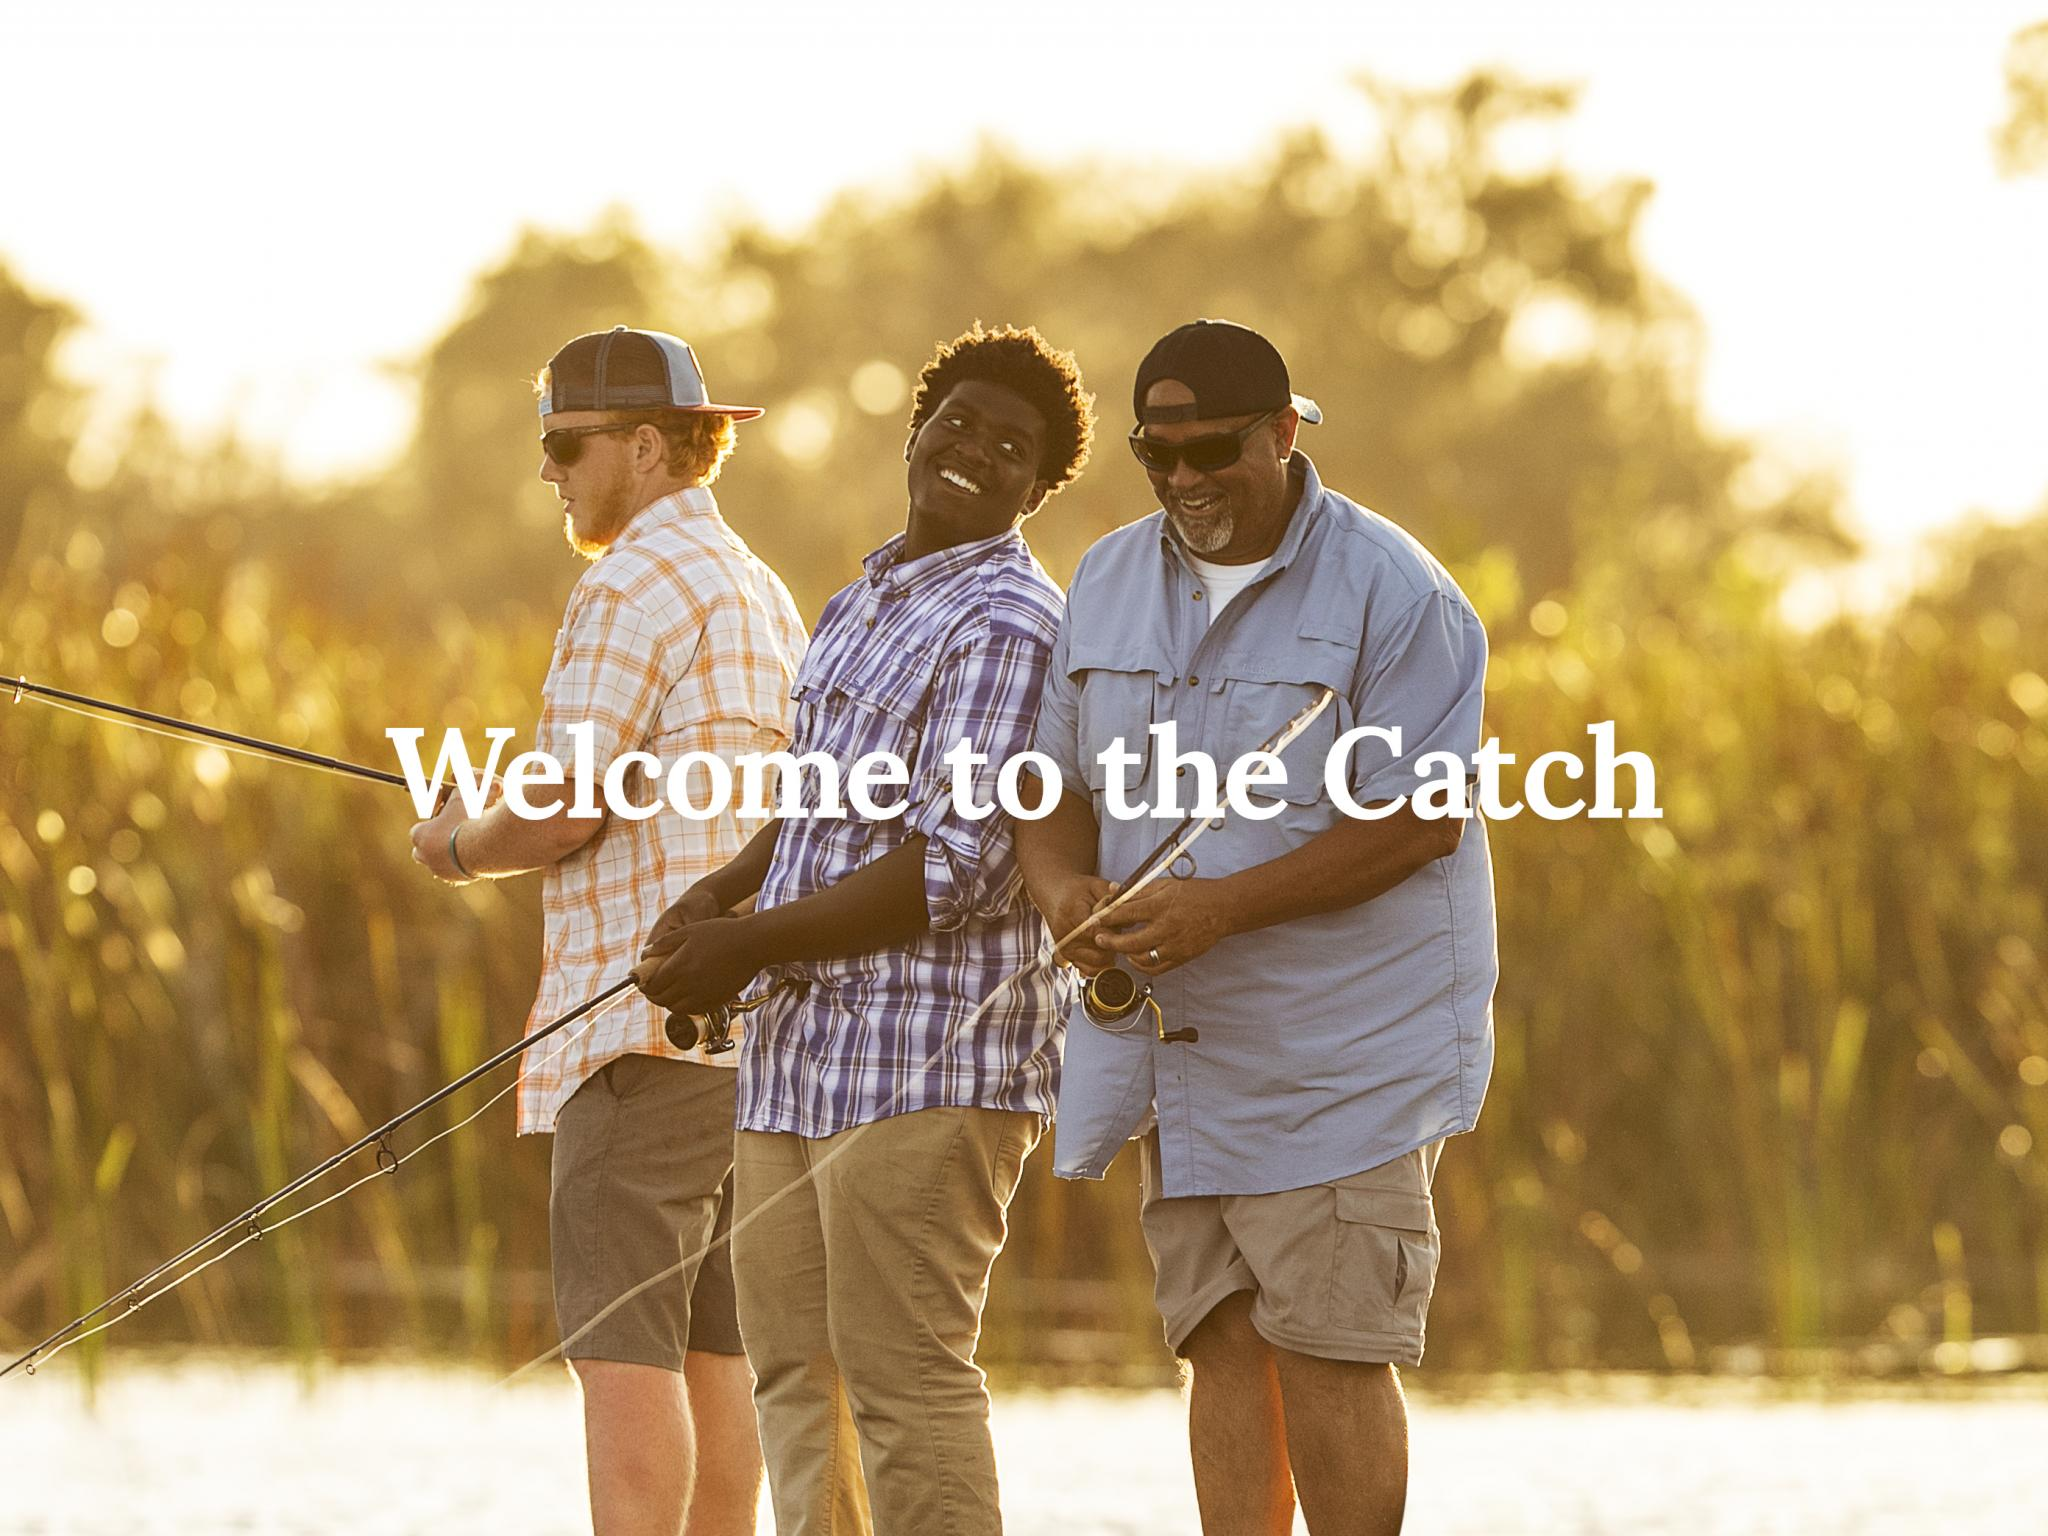 Welcome to the Catch